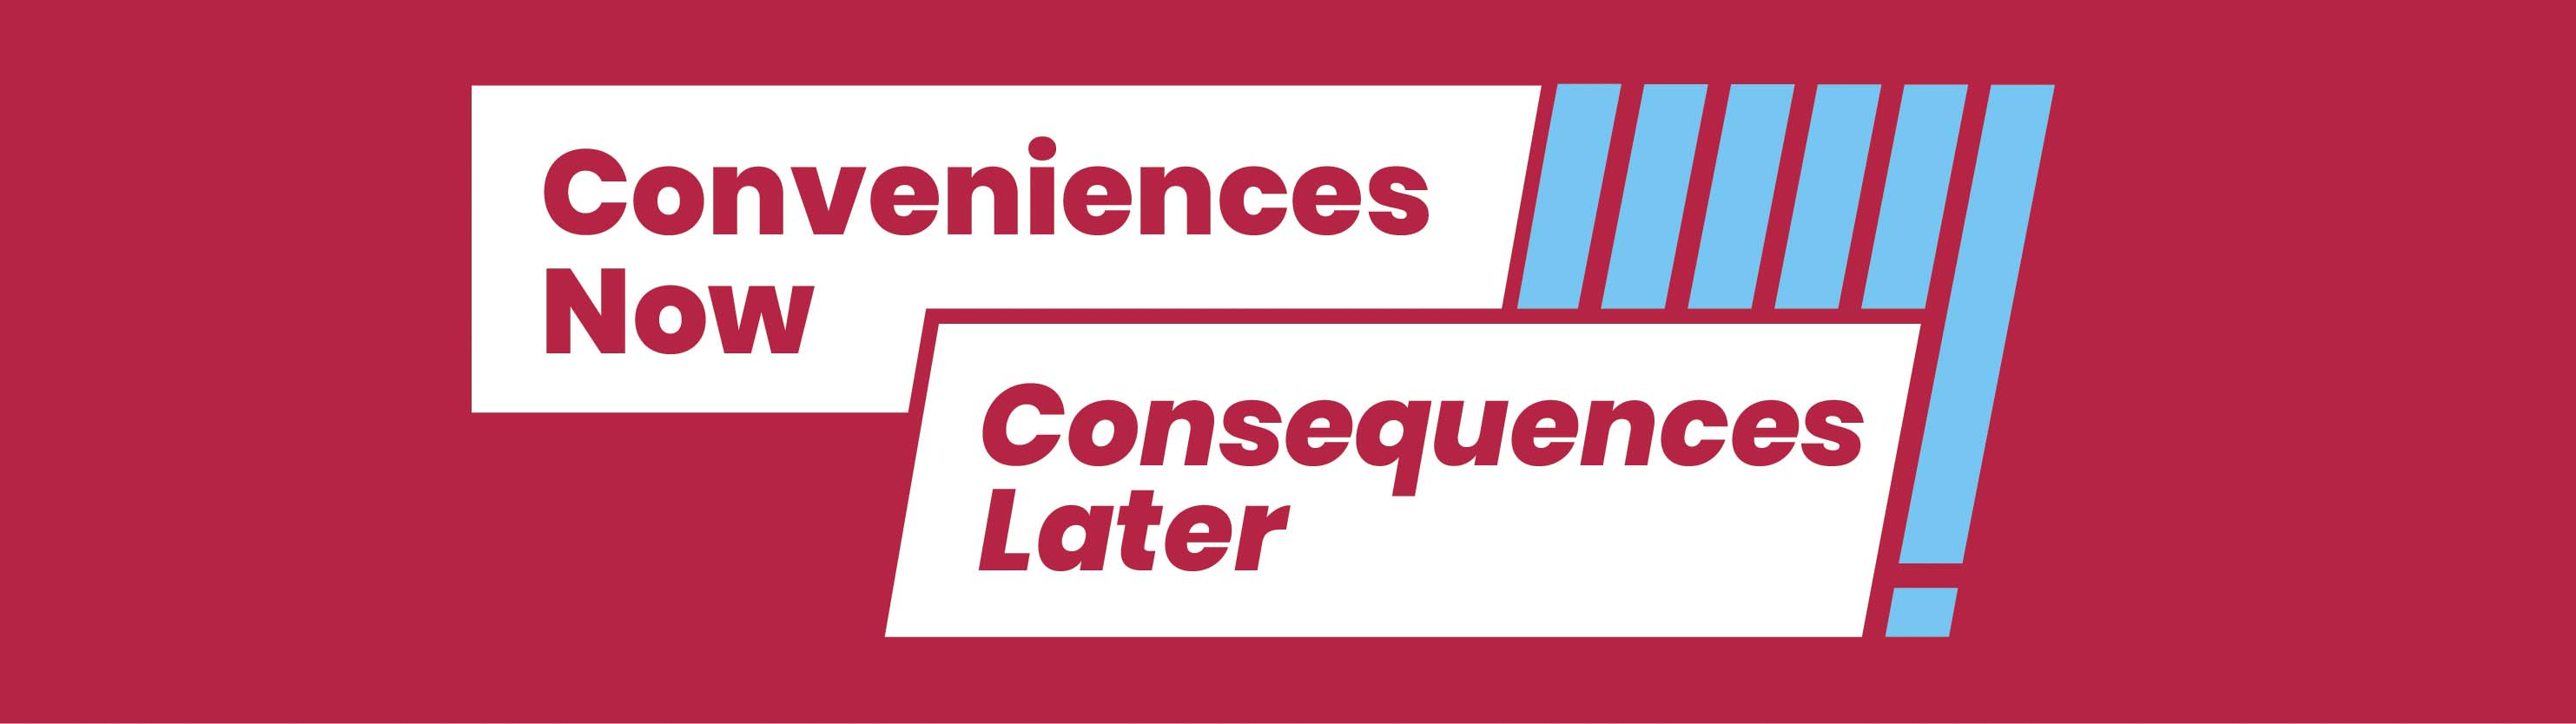 conveniences now; consequences later